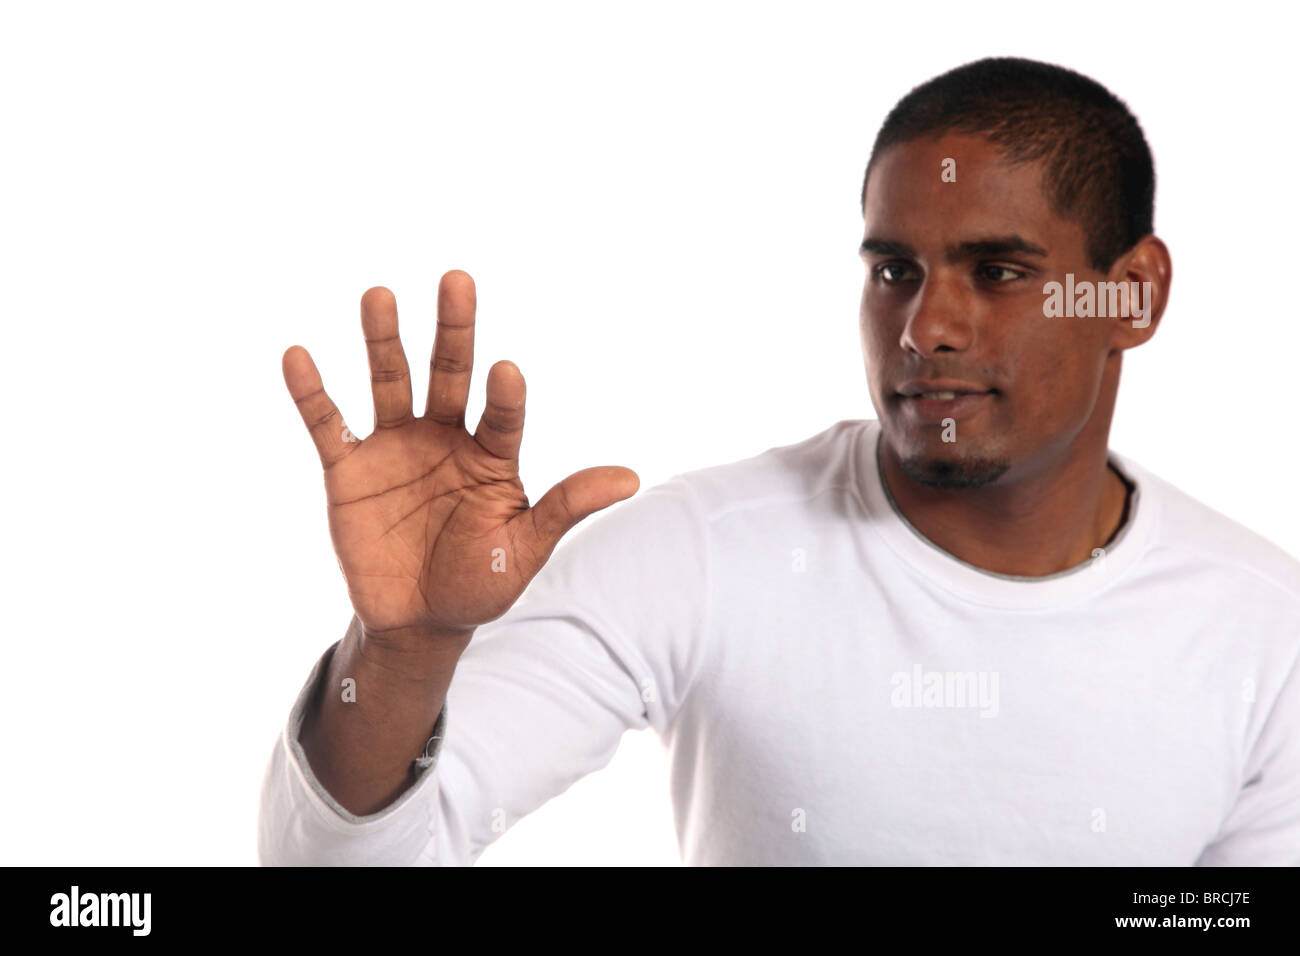 An attractive dark-skinned man pushing with his forefinger. Image with extra copy space. Focus lies on hand. - Stock Image